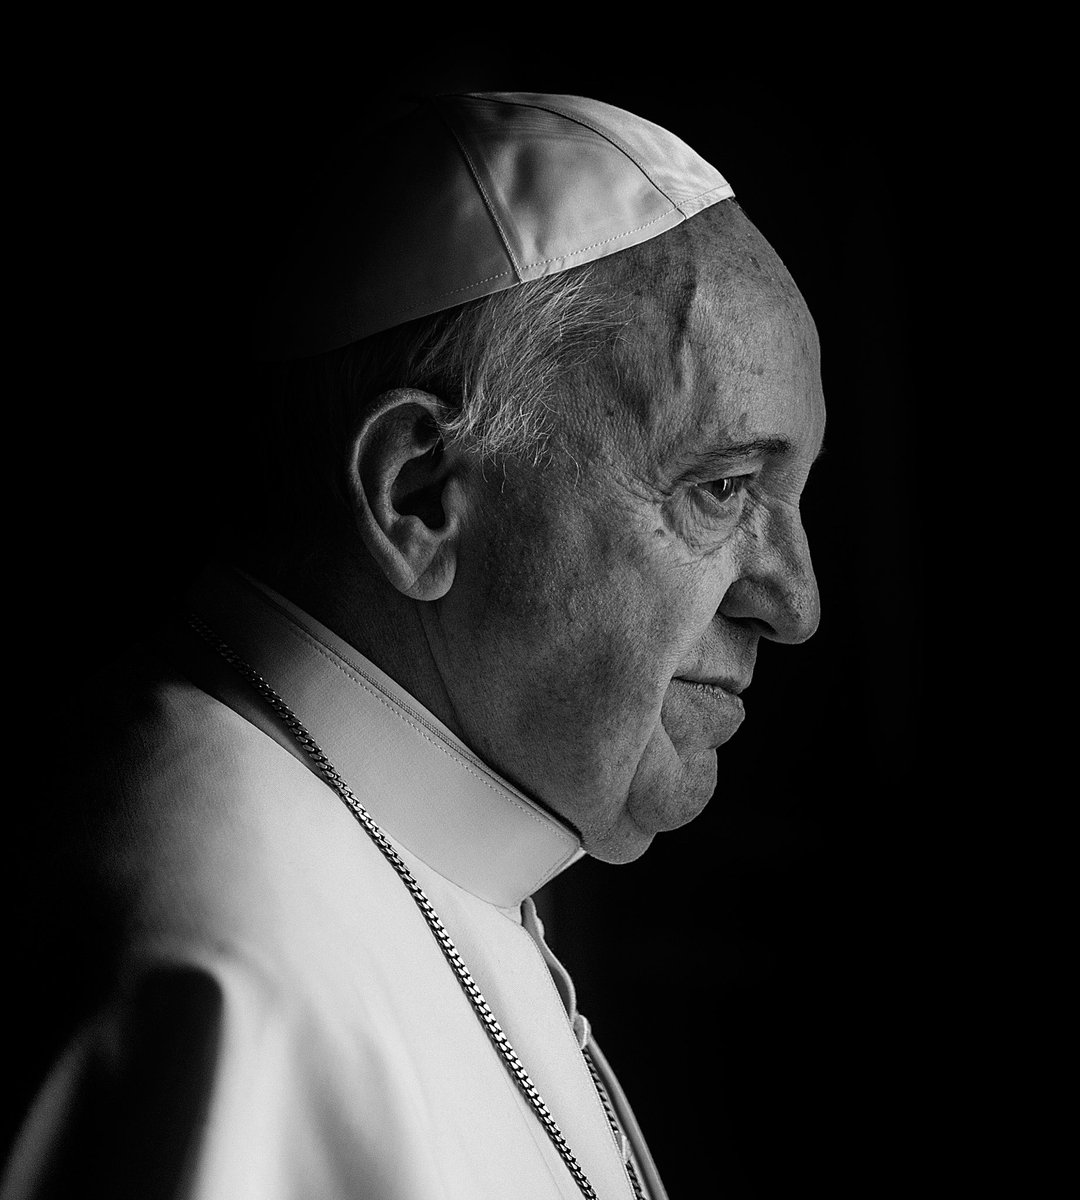 Pope Francis is in the midst of another historic pilgrimage right now. 3/28/21, you can watch our film with him - FRANCESCO - on @discoveryplus & see how @Pontifex takes on the greatest challenges facing our 🌎 He is the first to take the name Francis & did so after St. Francis https://t.co/2MQBhv0RpT